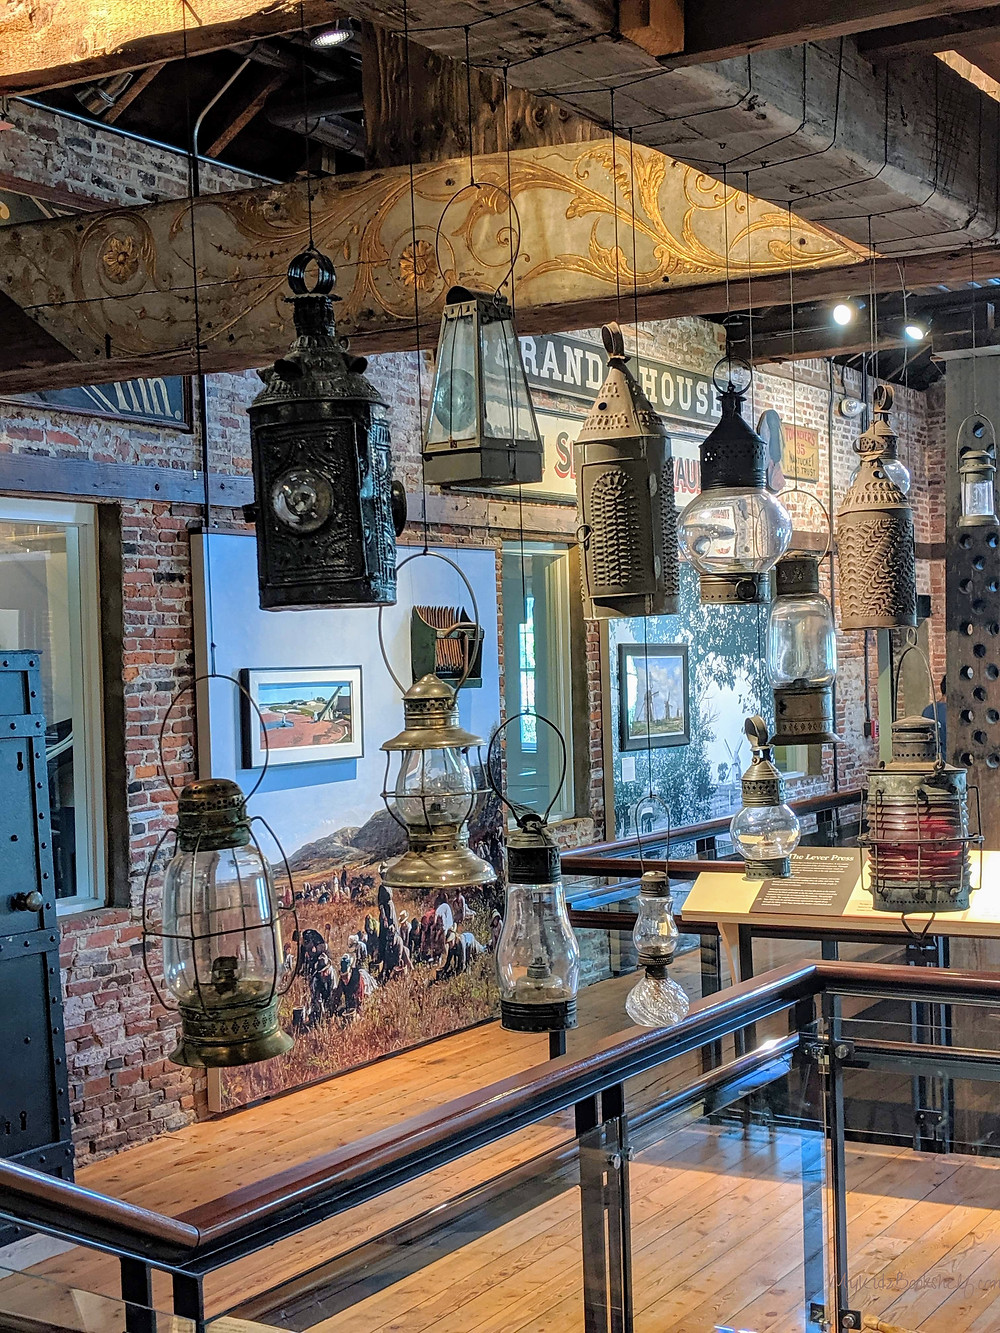 Lanterns-upstairs-at-the-Whaling-Museum-room-filled-with-all-kinds-of-antique-lamps